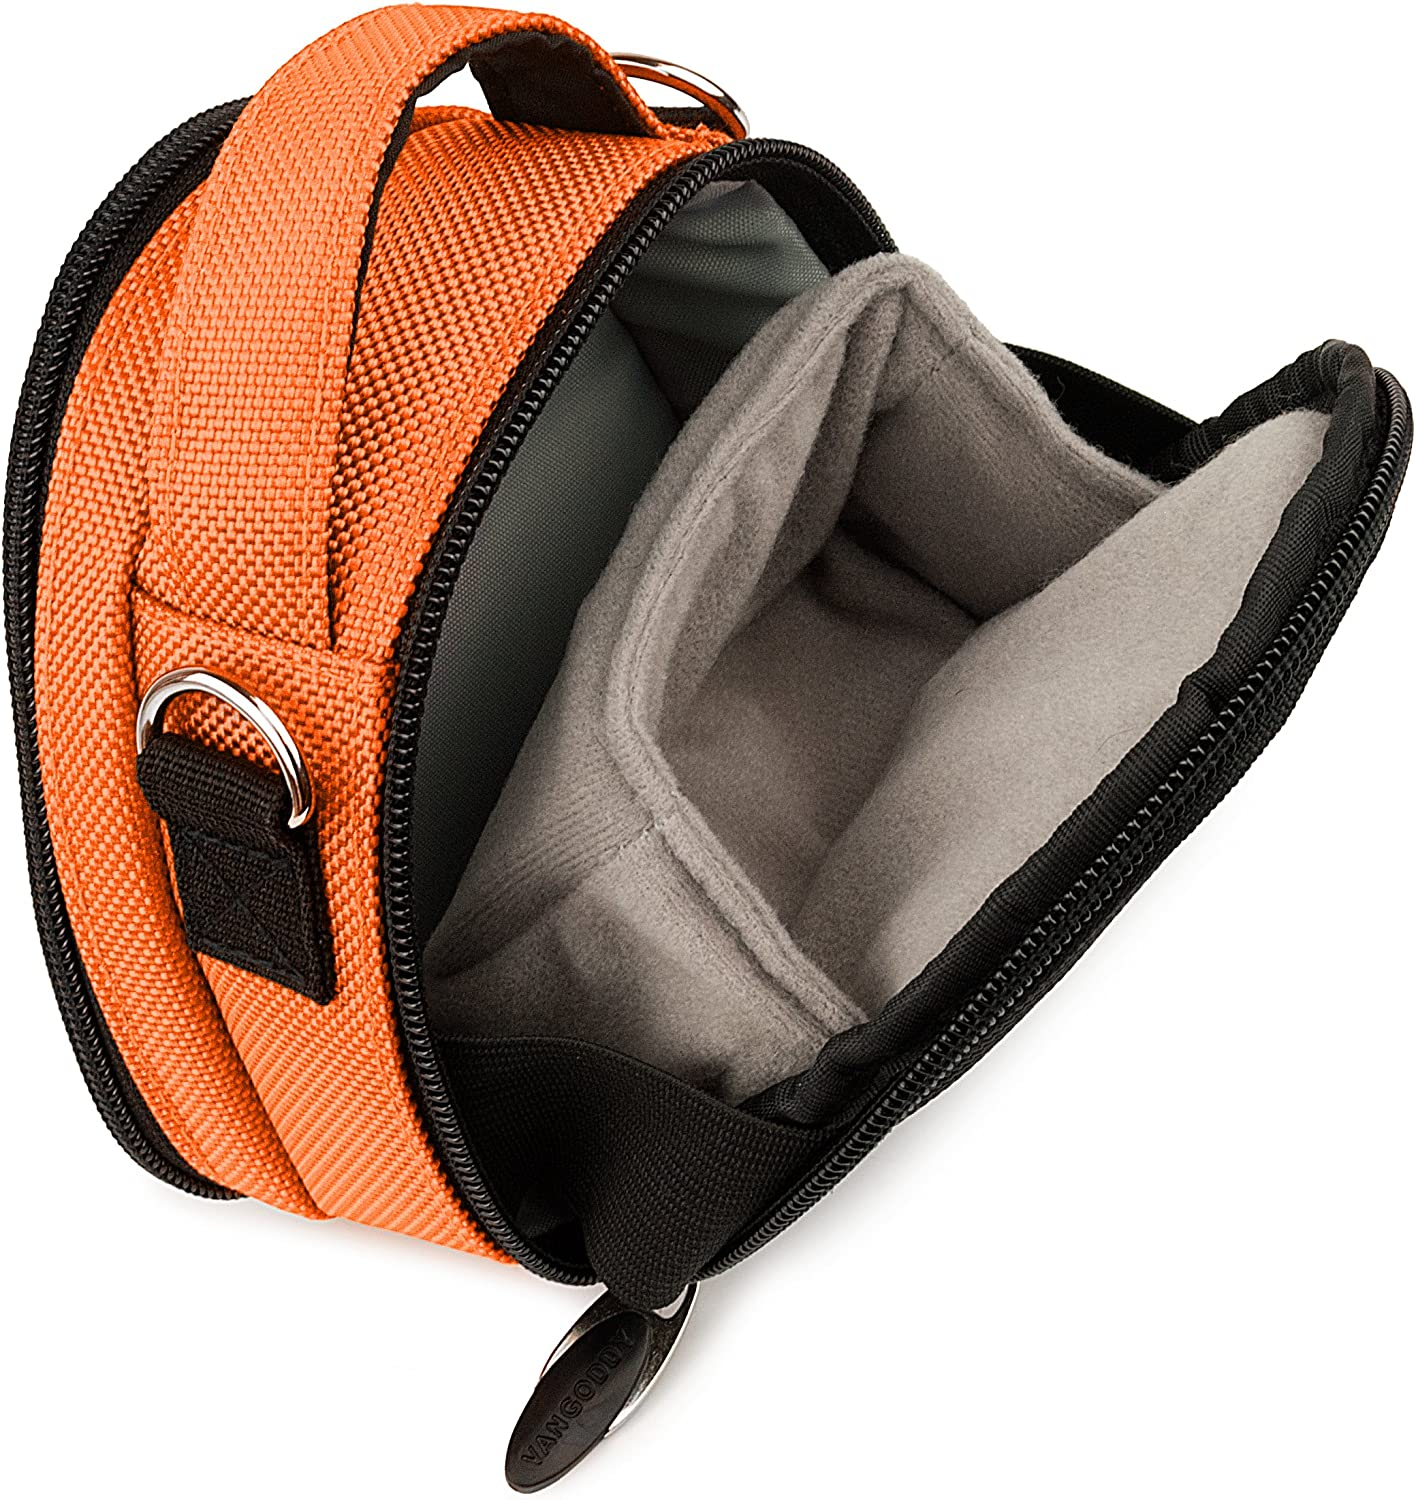 Mini Carrying Bag Case for Panasonic LUMIX DC GF10KGK Cameras up to 4.4 inch